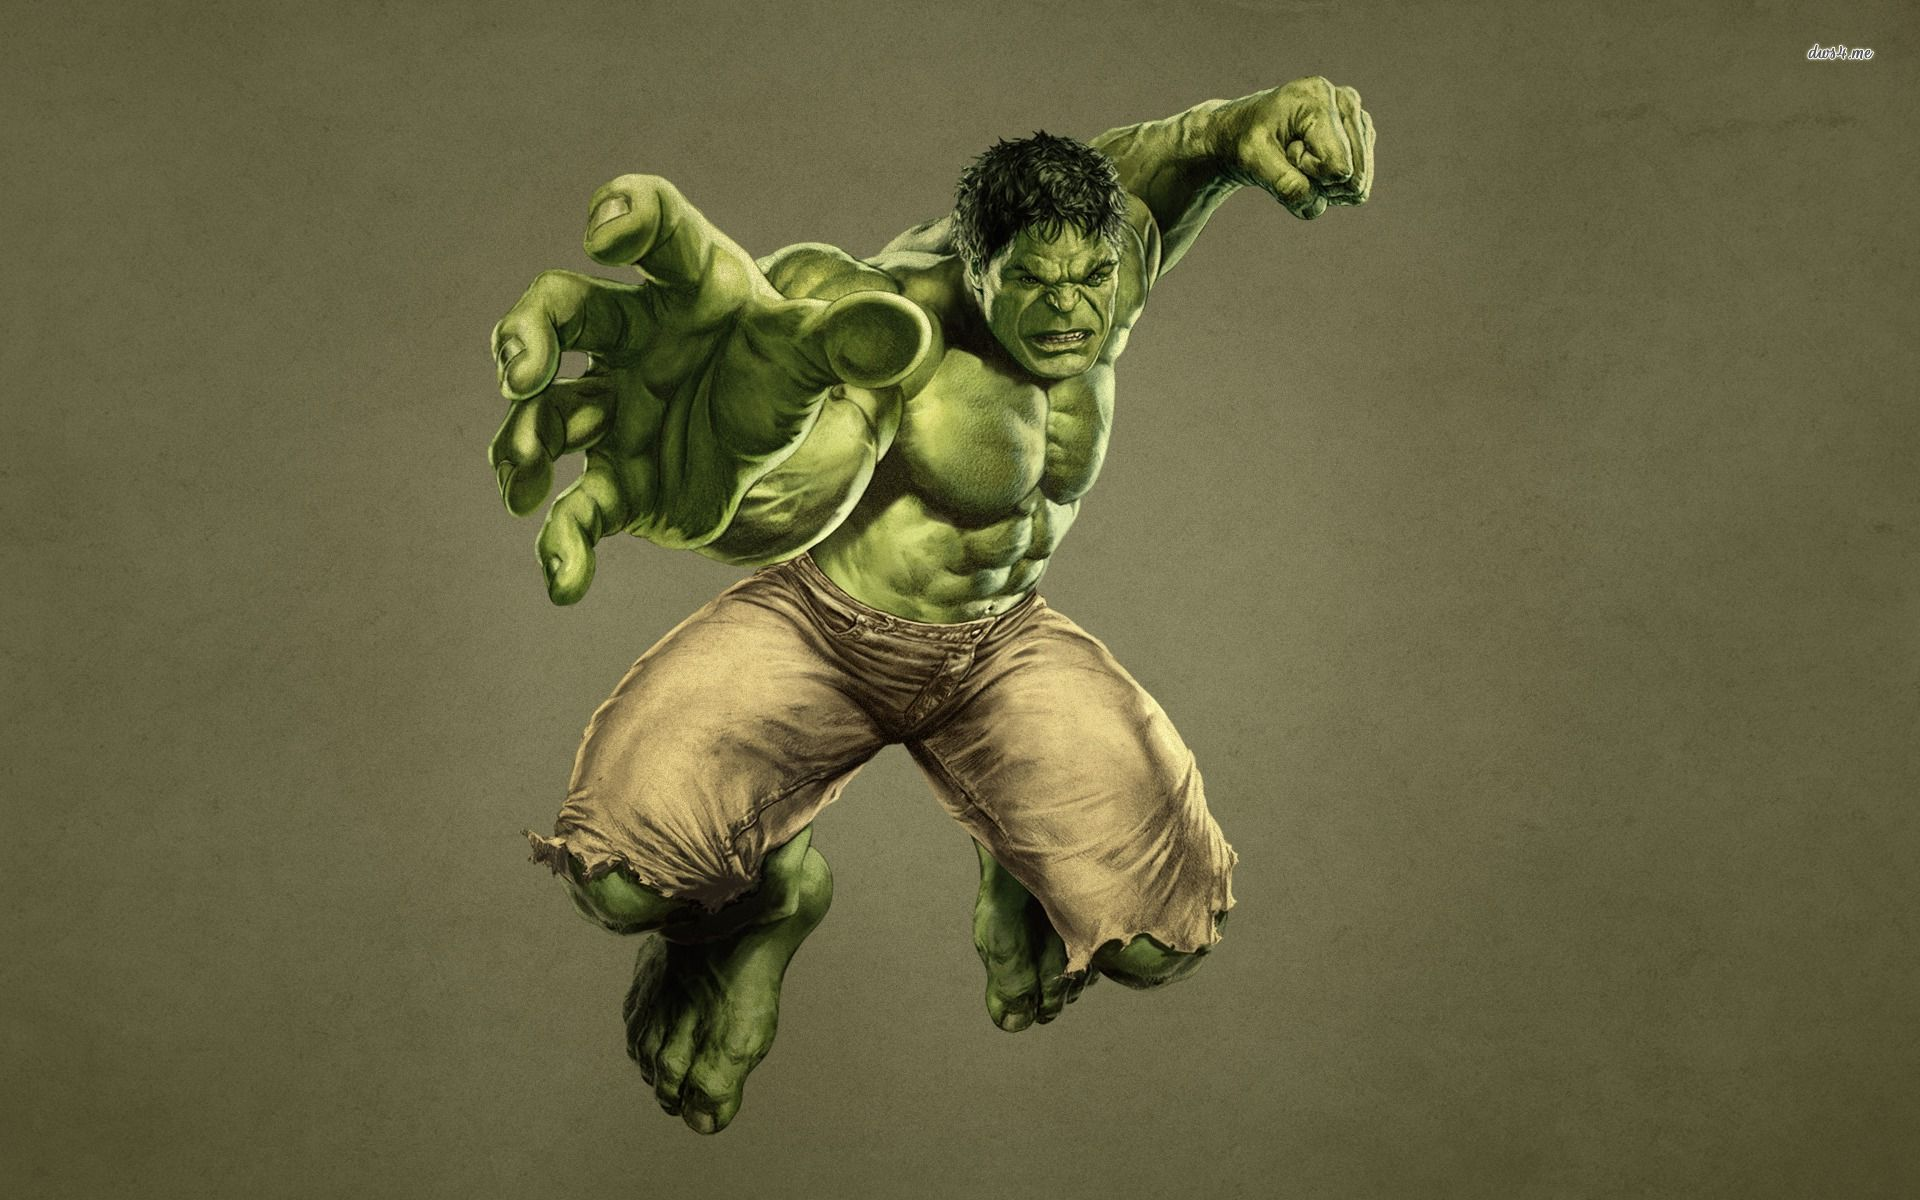 The Incredible Hulk Hd Wallpapers Backgrounds Wallpaper 1920 1080 Wallpaper Hulk 57 Wallpapers Adorable Wallpapers Avengers Wallpaper Hulk Hulk Marvel